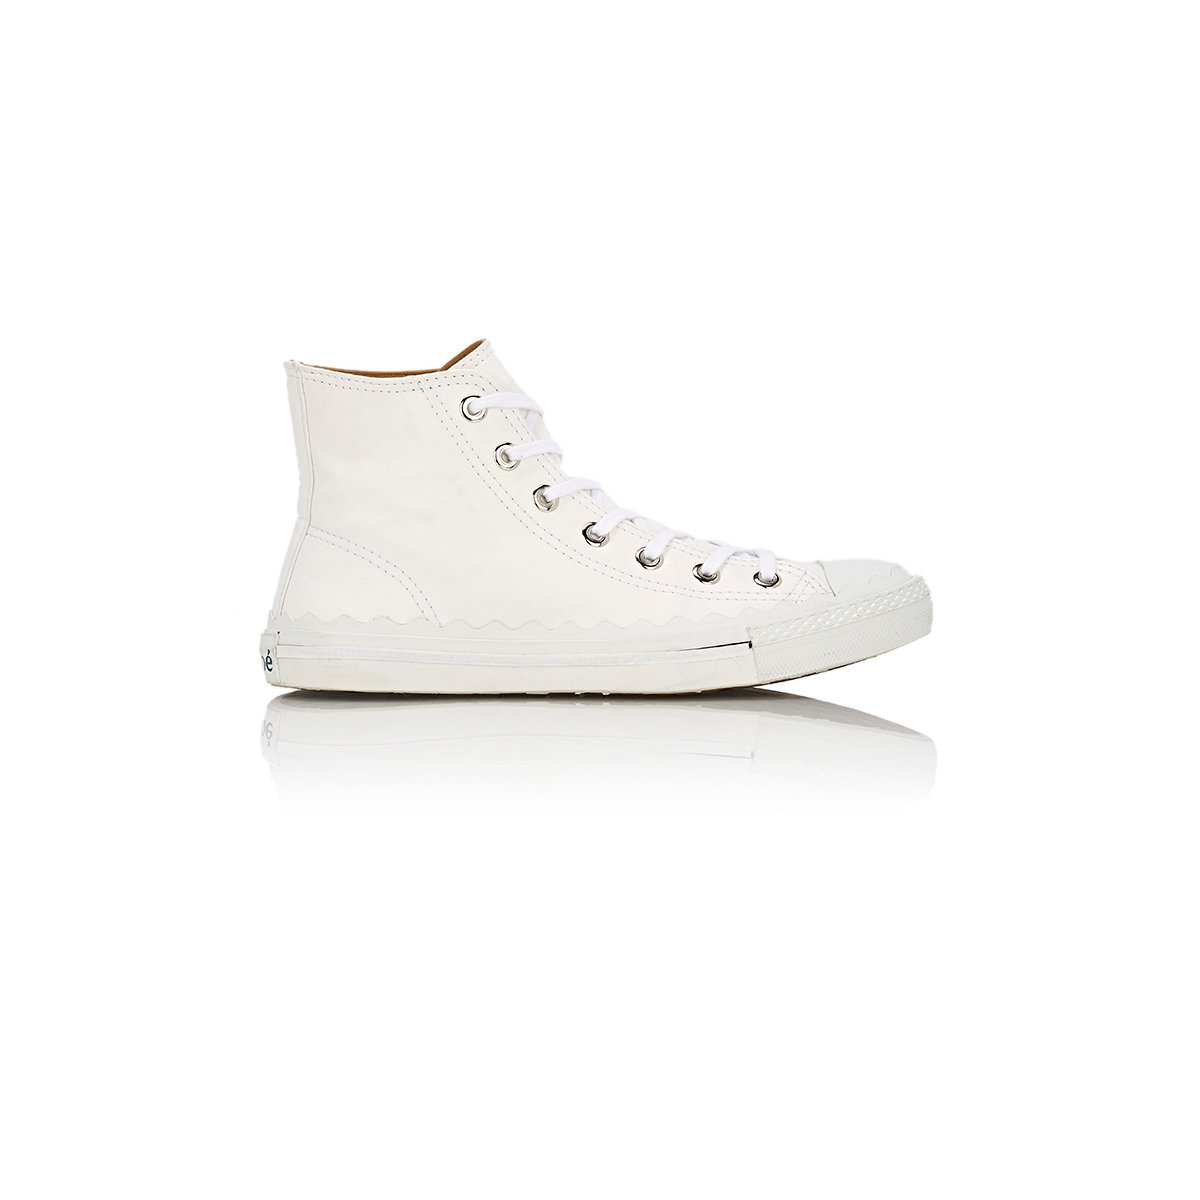 chlo leather kyle sneakers in white save 61 lyst. Black Bedroom Furniture Sets. Home Design Ideas